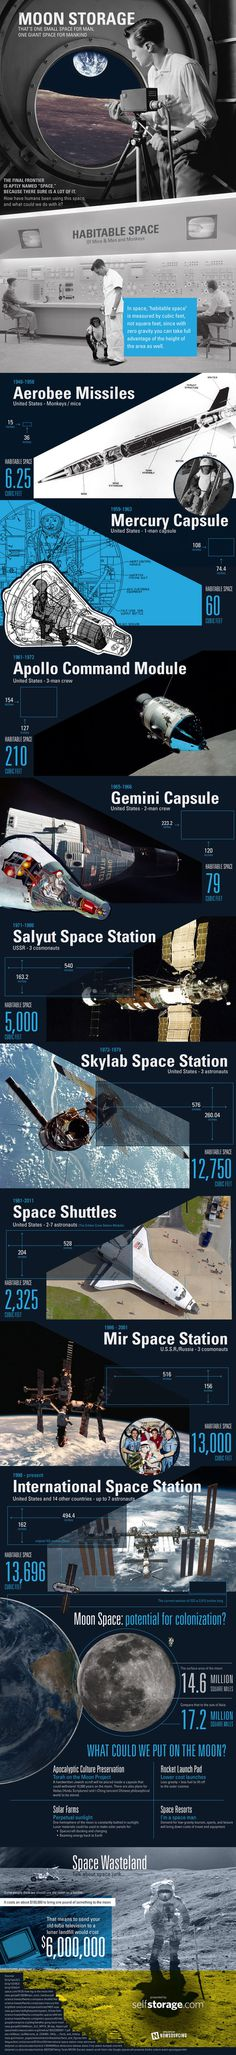 Storing stuff on the moon could be pricey, but vacationing there could be doable. Check out this infographic for more. #lunar #solar #storage #power #the #using #moon